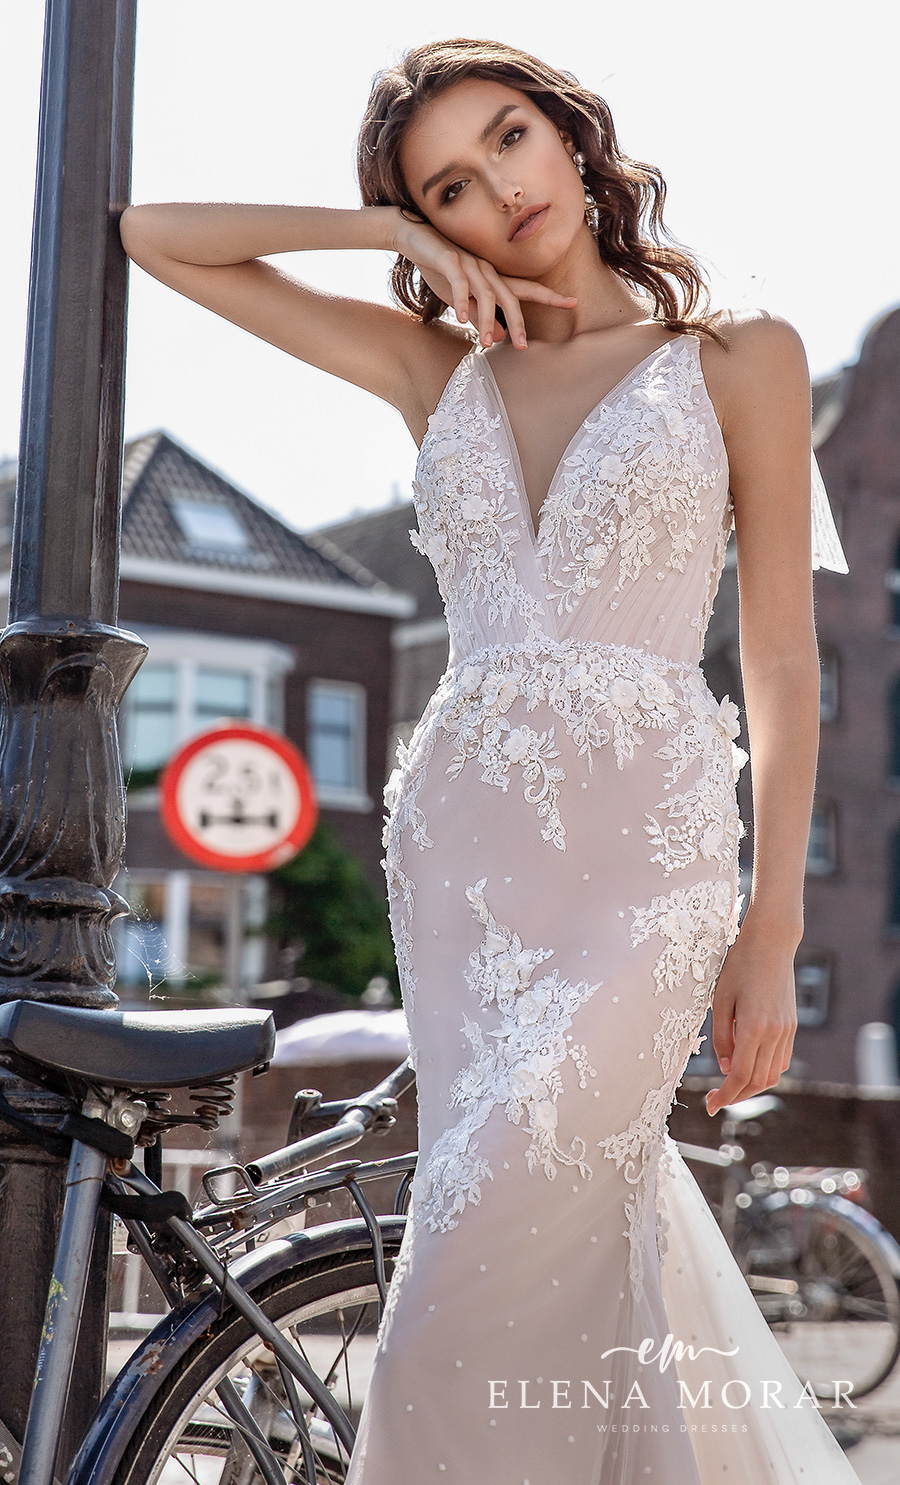 elena morar 2021 rotterdam bridal sleeveless ribbon strap v neck heavily embellished bodice romantic blush mermaid wedding dress v back sweep train (rm004) zv